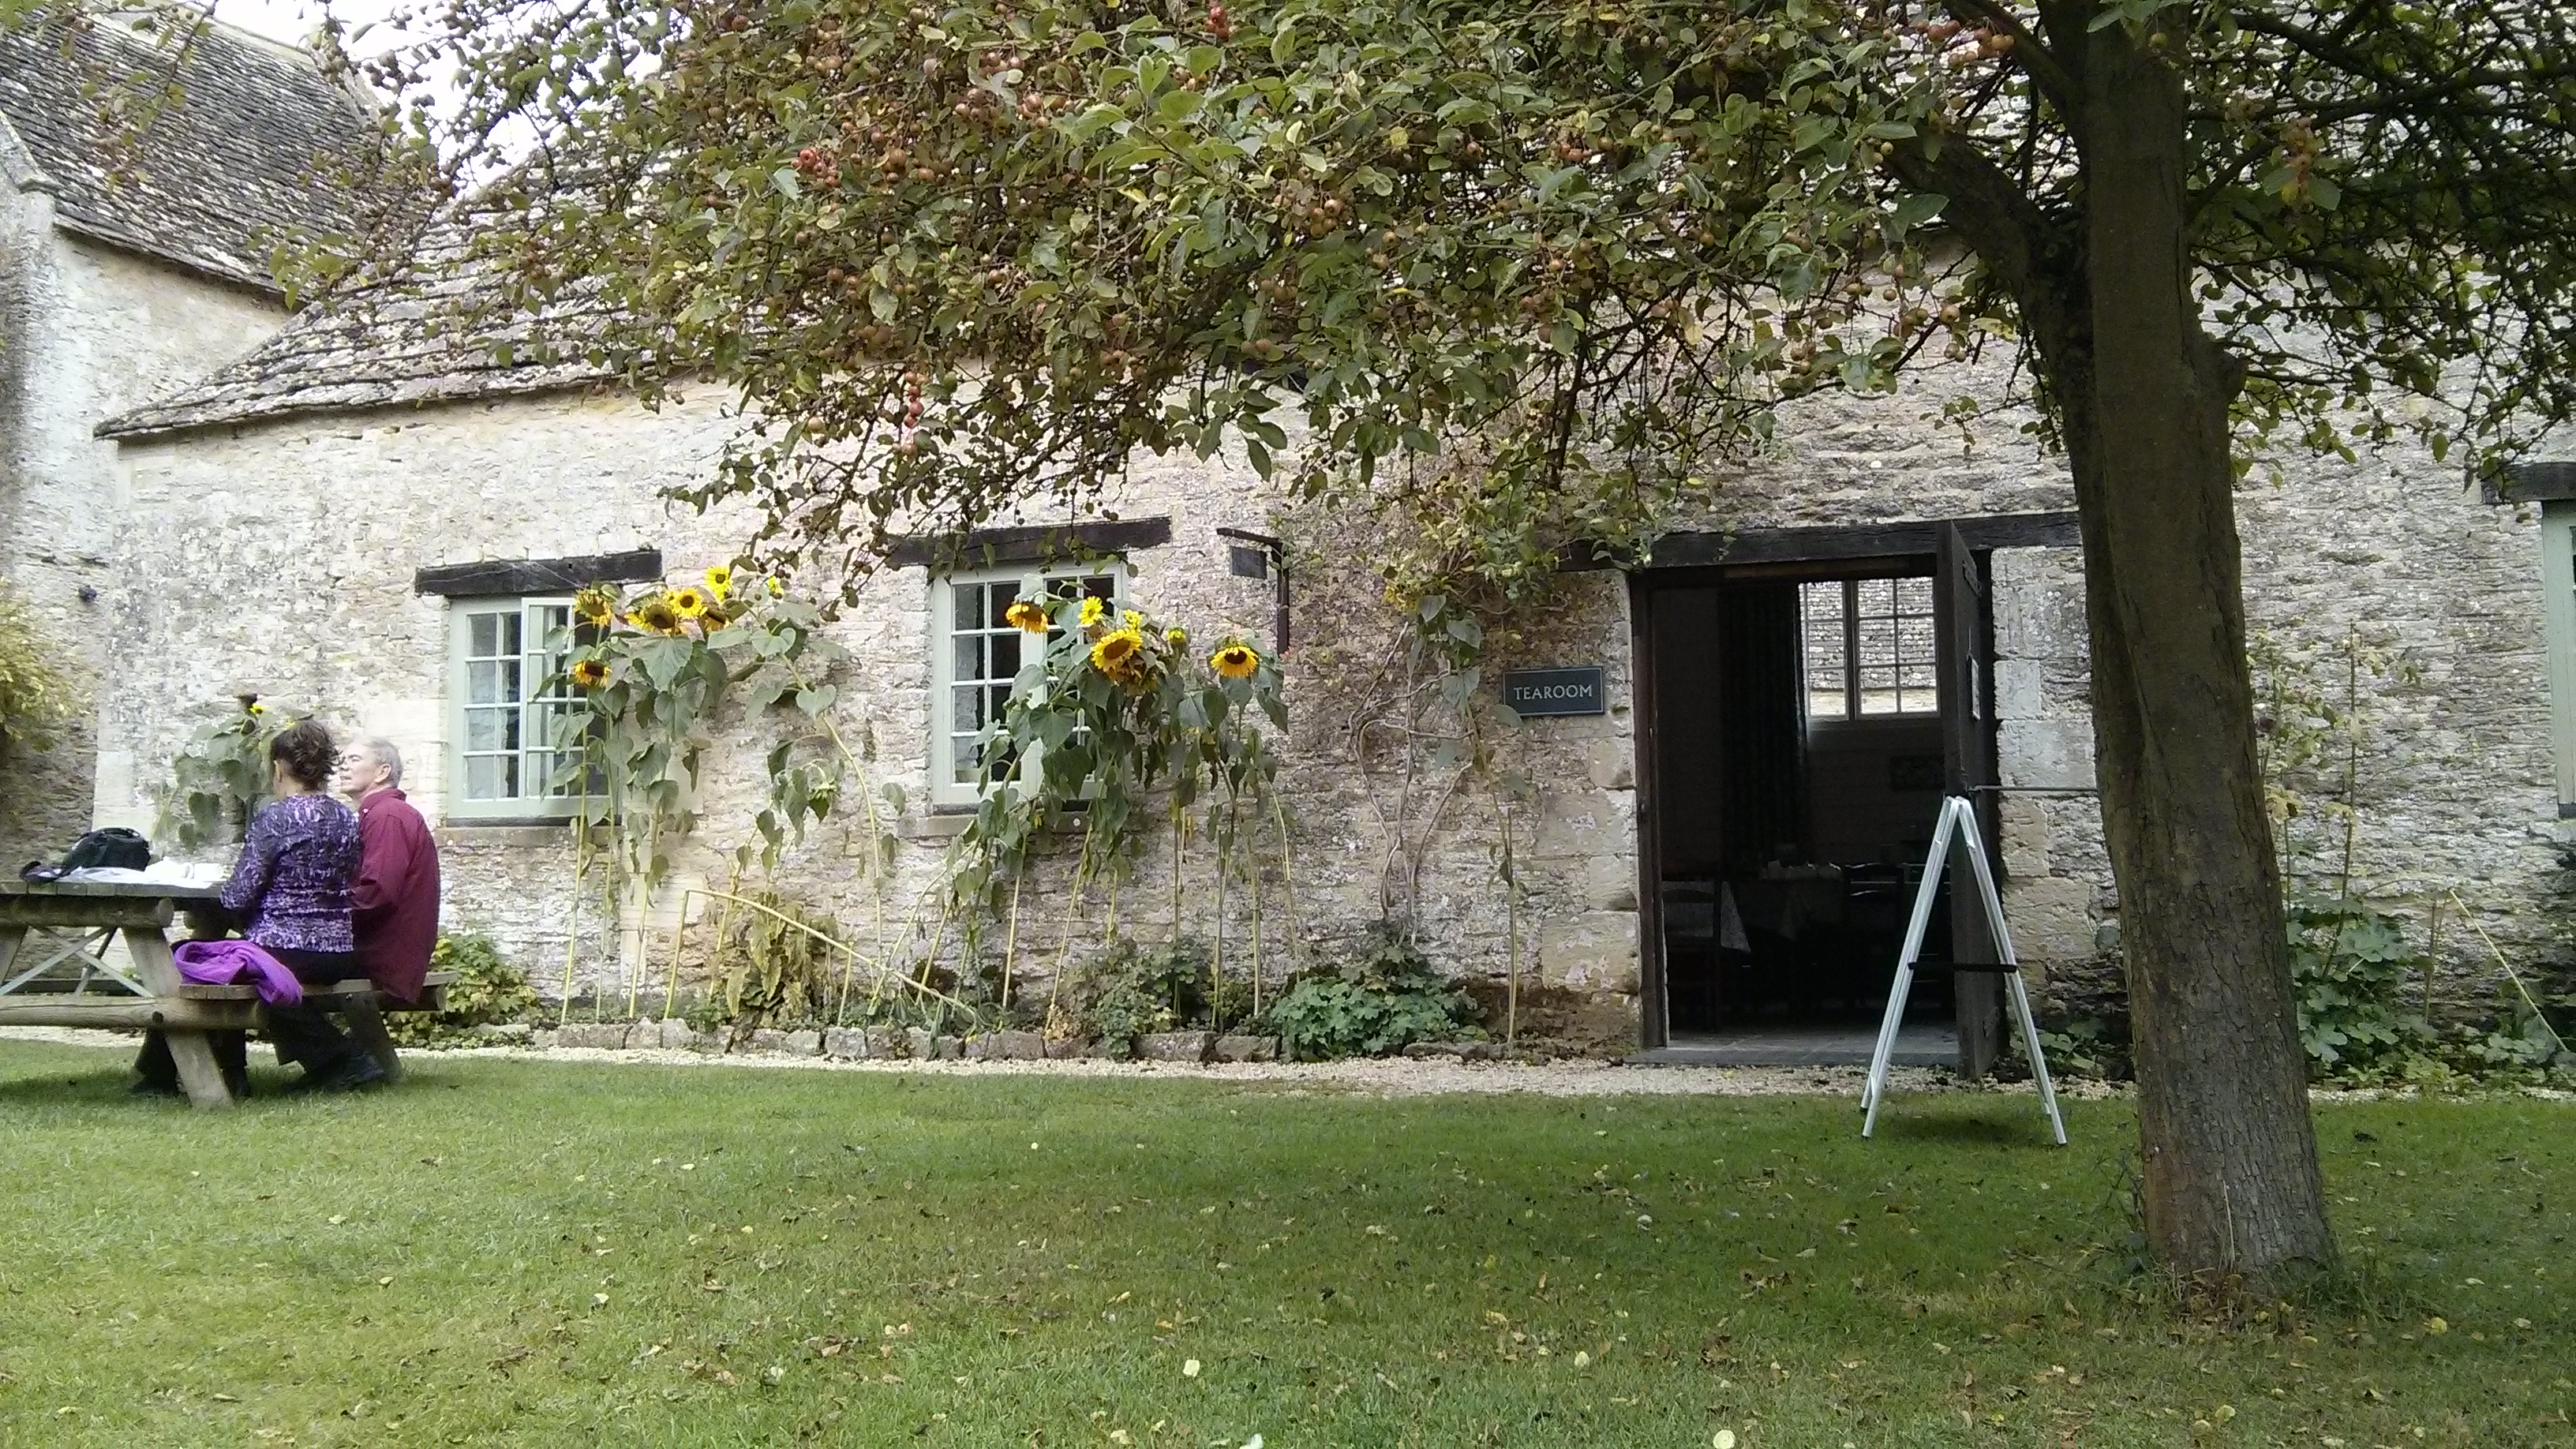 Kelmscott Manor Tearoom, Glos